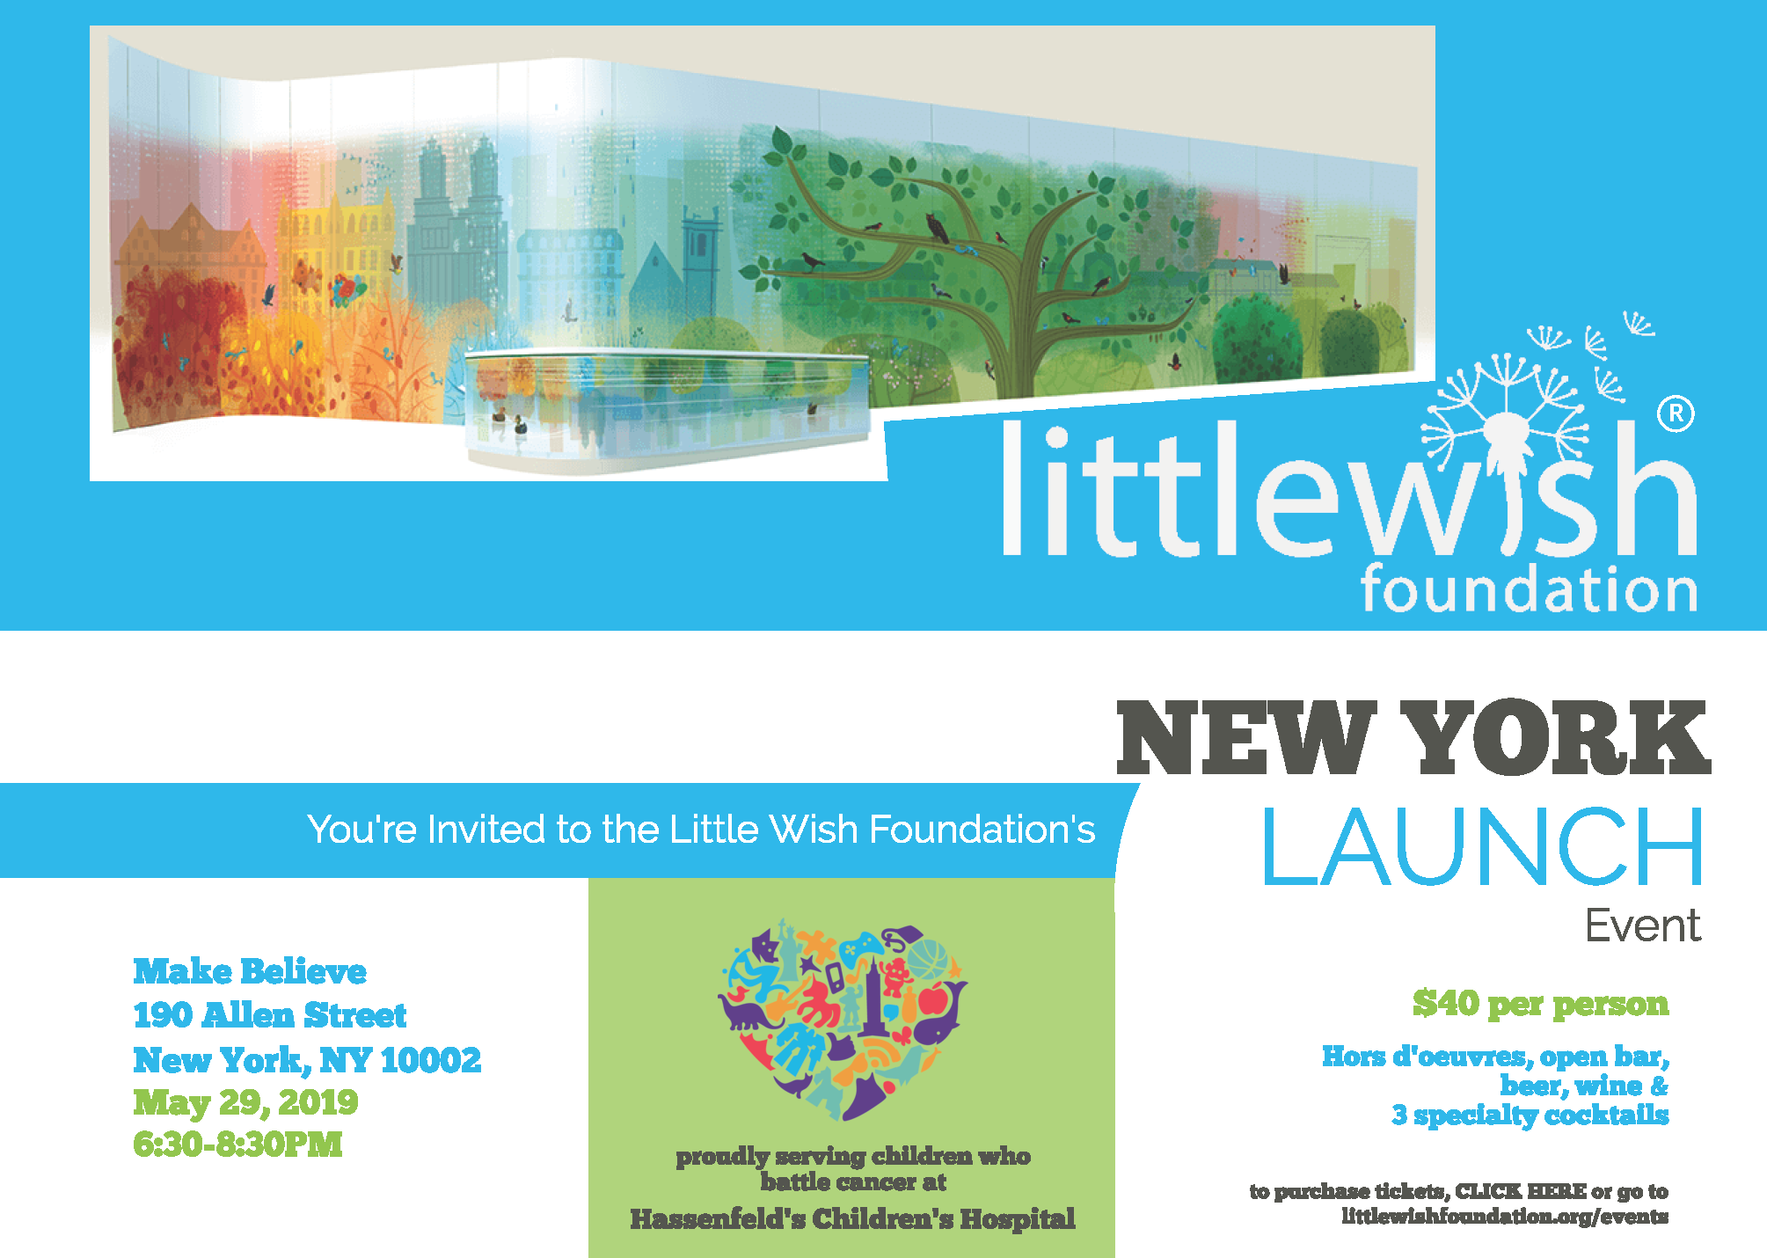 Little Wish Foundation New York Launch Event image